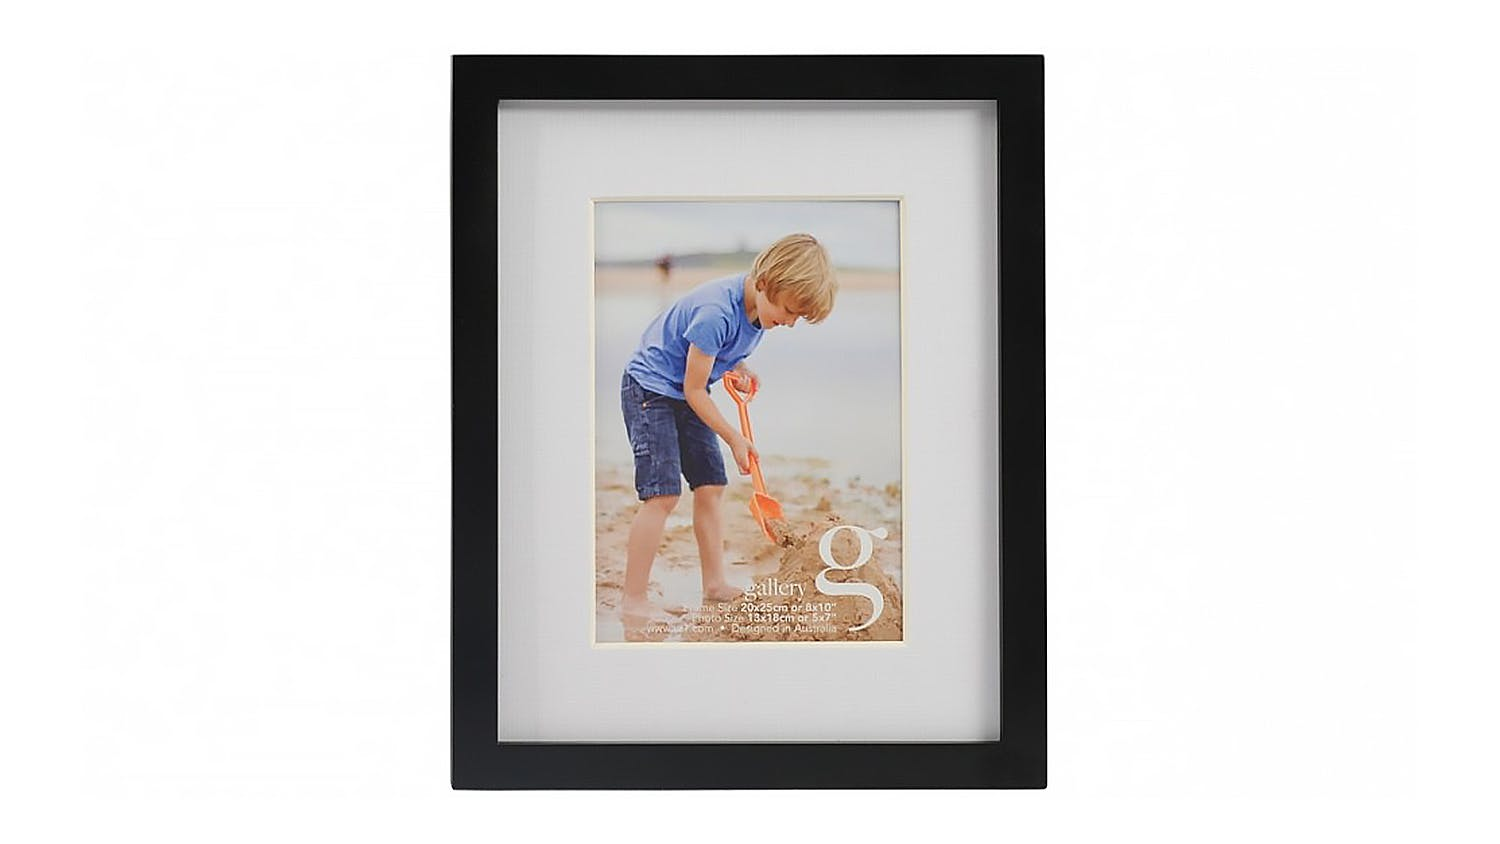 UR1 Gallery 8x10 Photo Frame with 5x7 Opening - Black